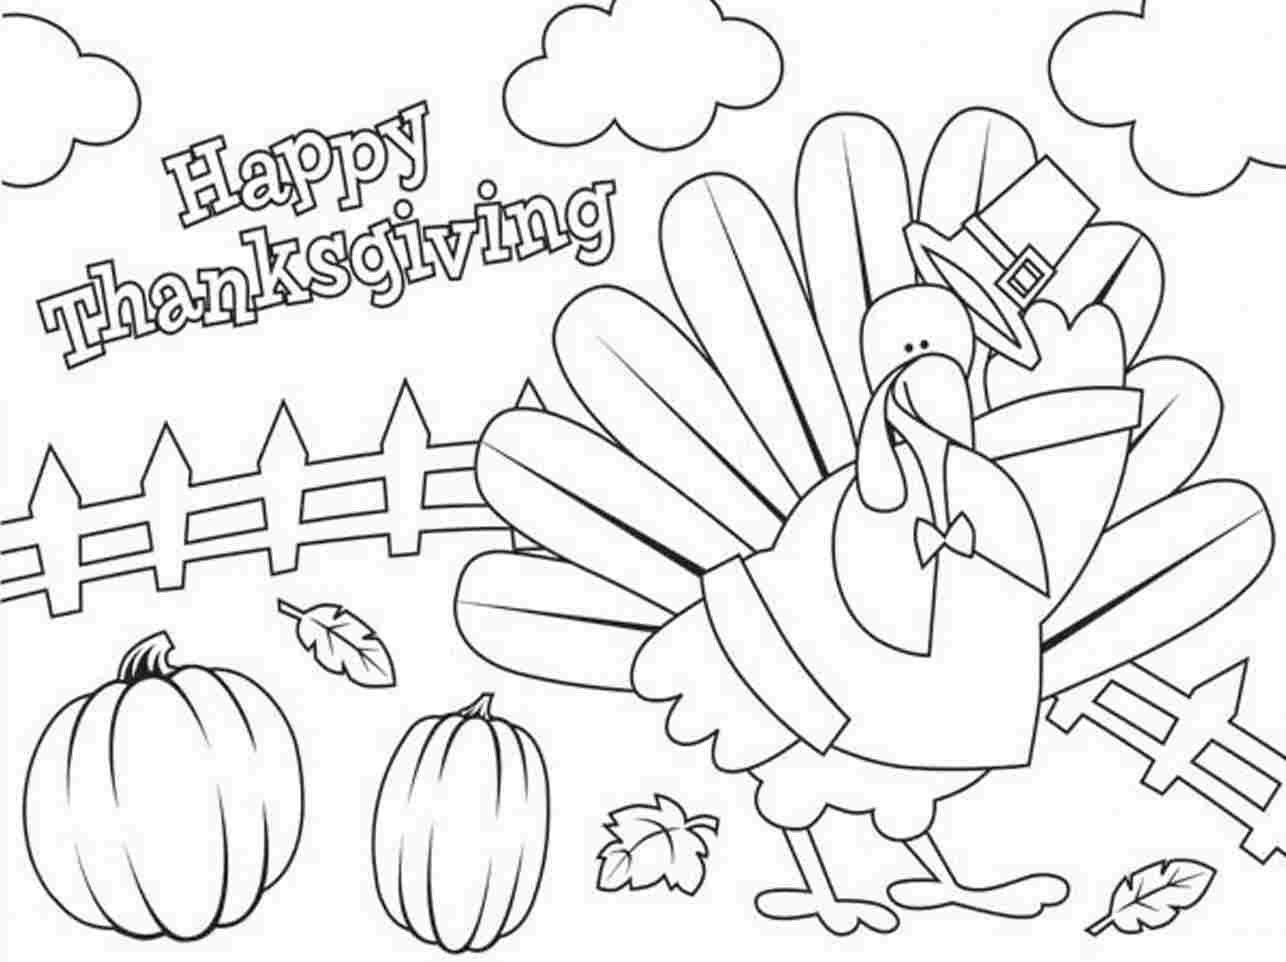 Happy Thanksgiving Printable Coloring Pages At Getdrawings Com